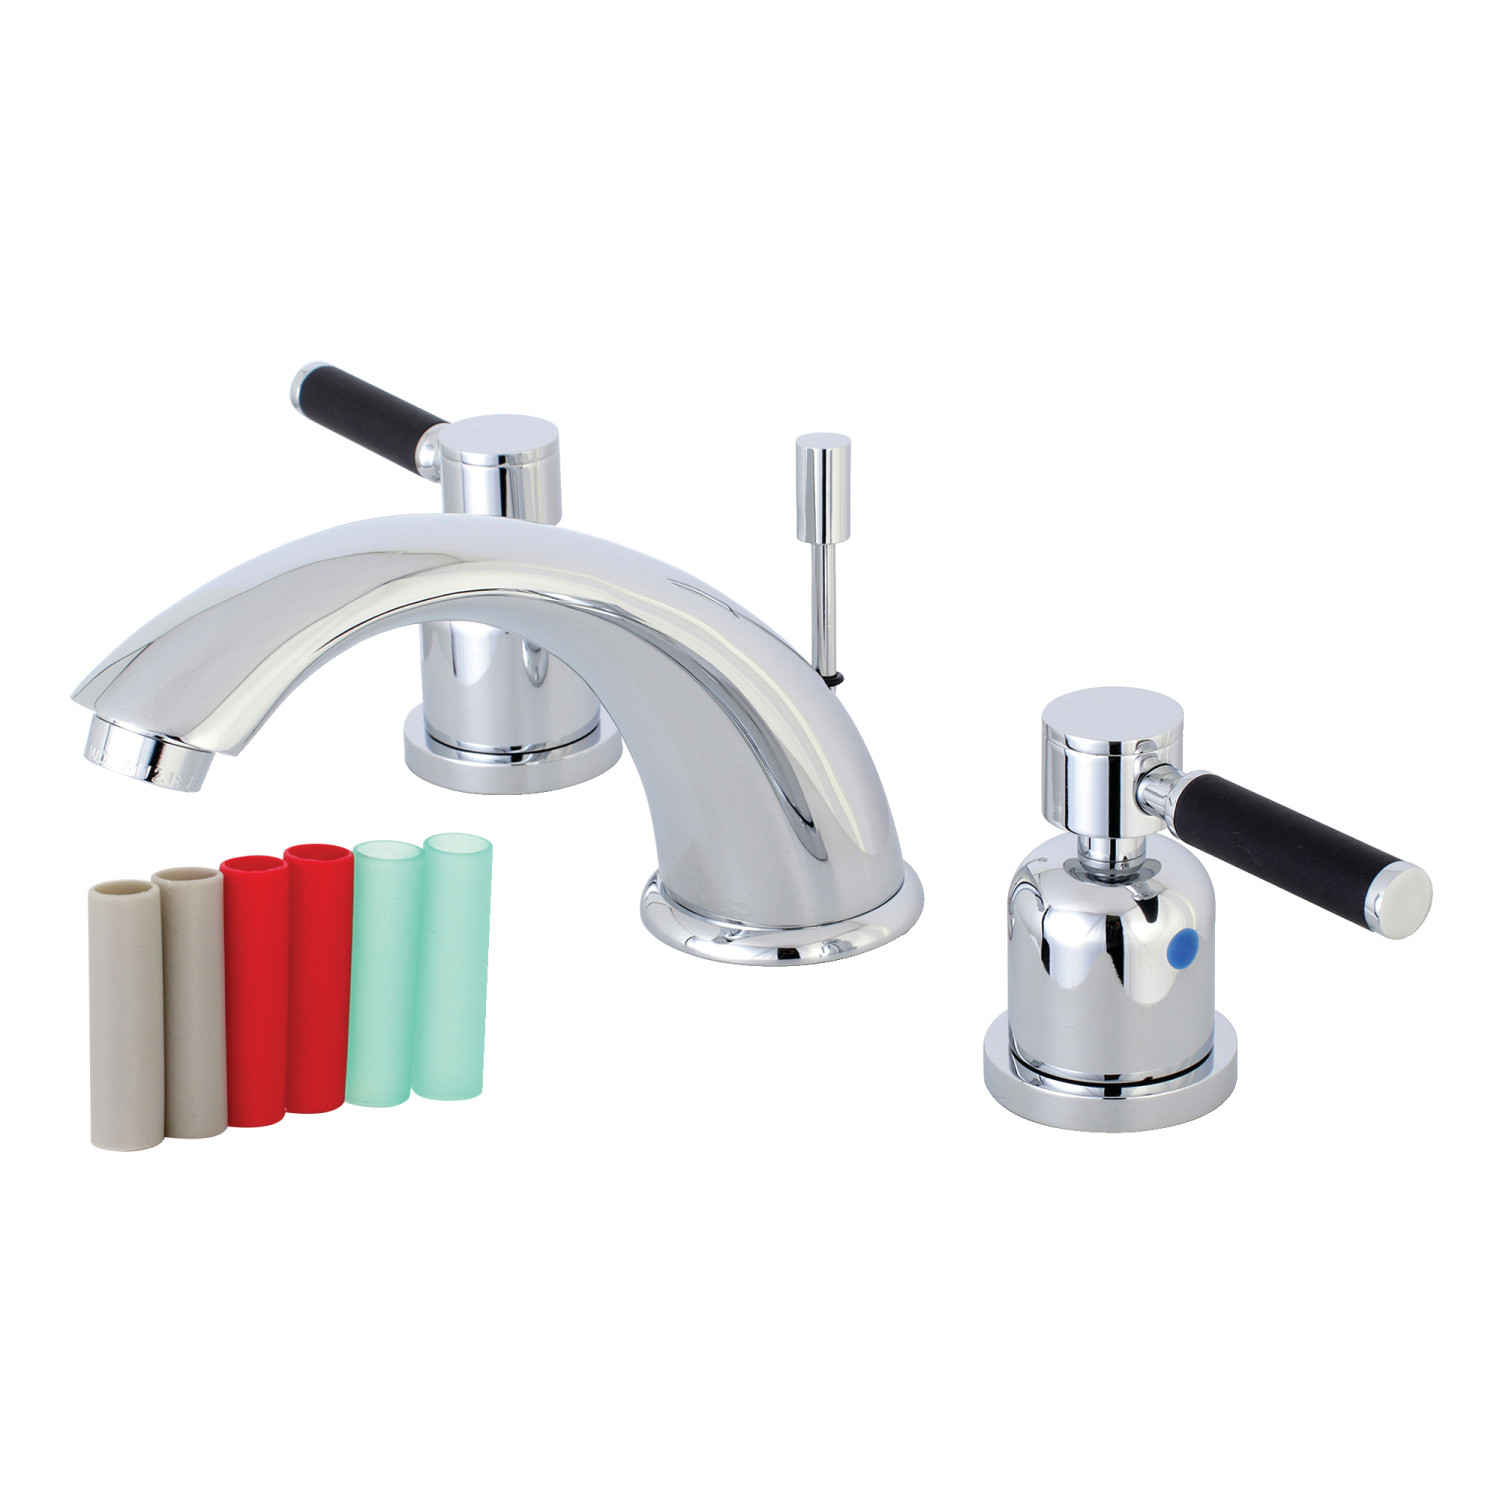 Modern Two-Handle 3-Hole Deck Mounted Widespread Bathroom Faucet with Plastic Pop-Up in Polished Chrome with 4 Color Options